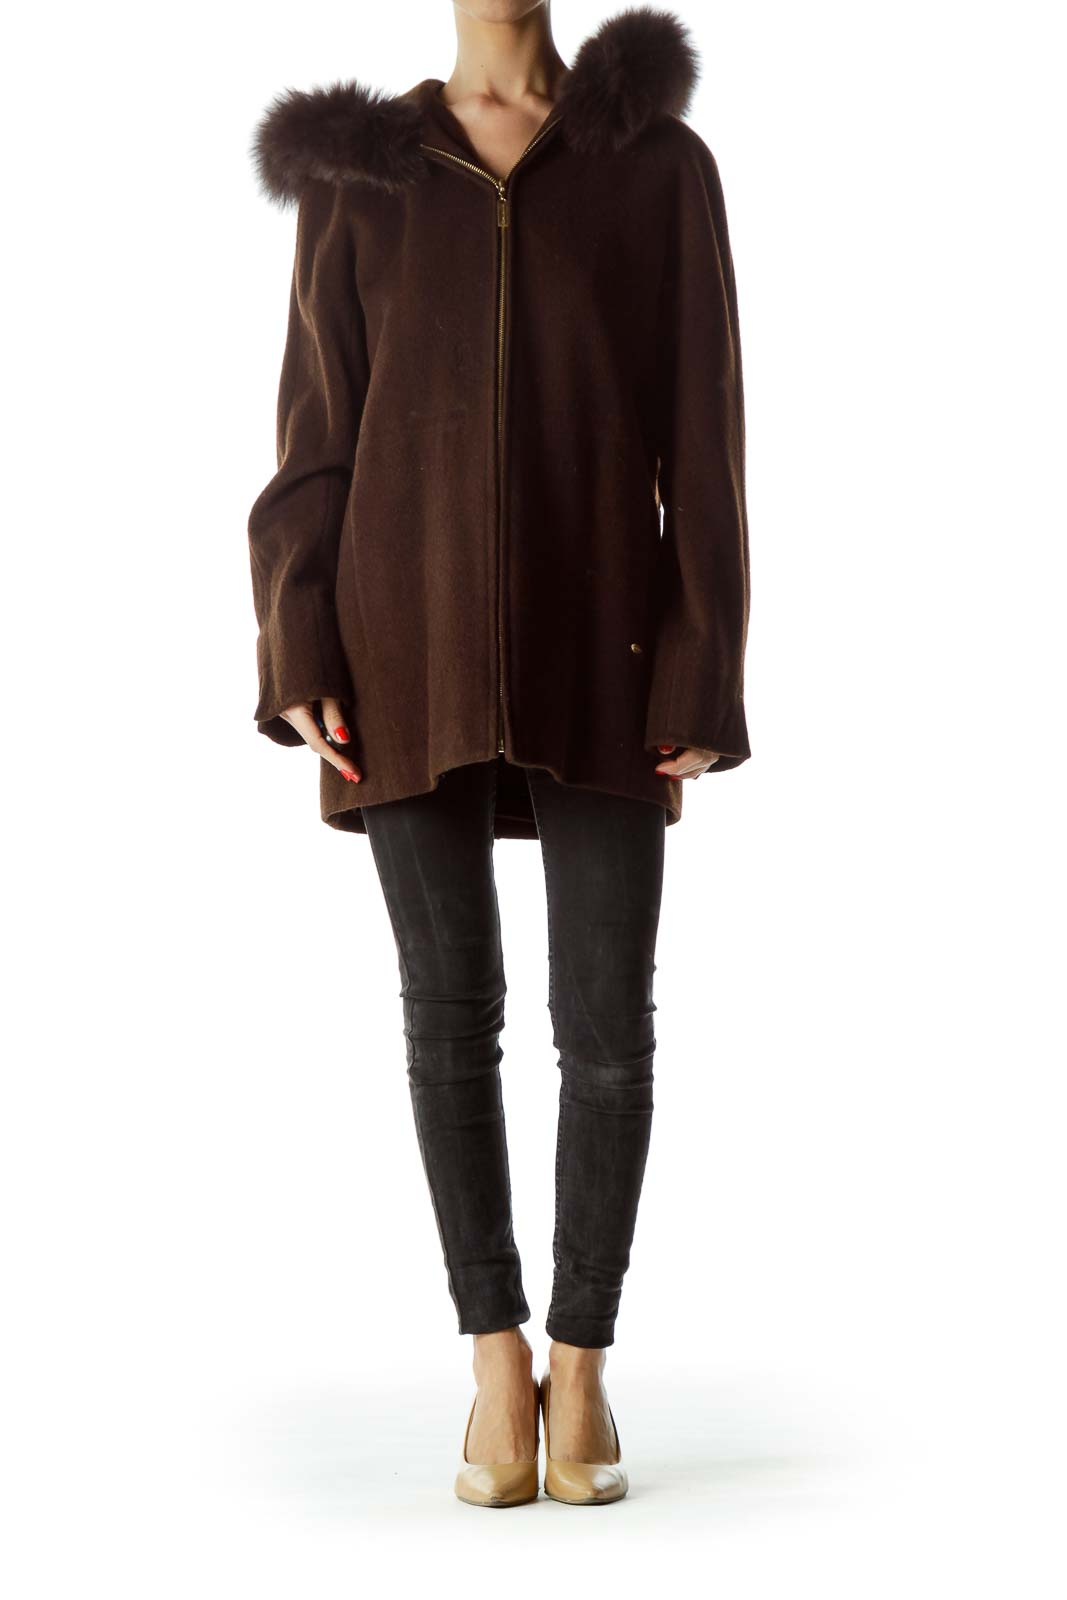 Brown Fur Hood Textured Zippered-Up Coat